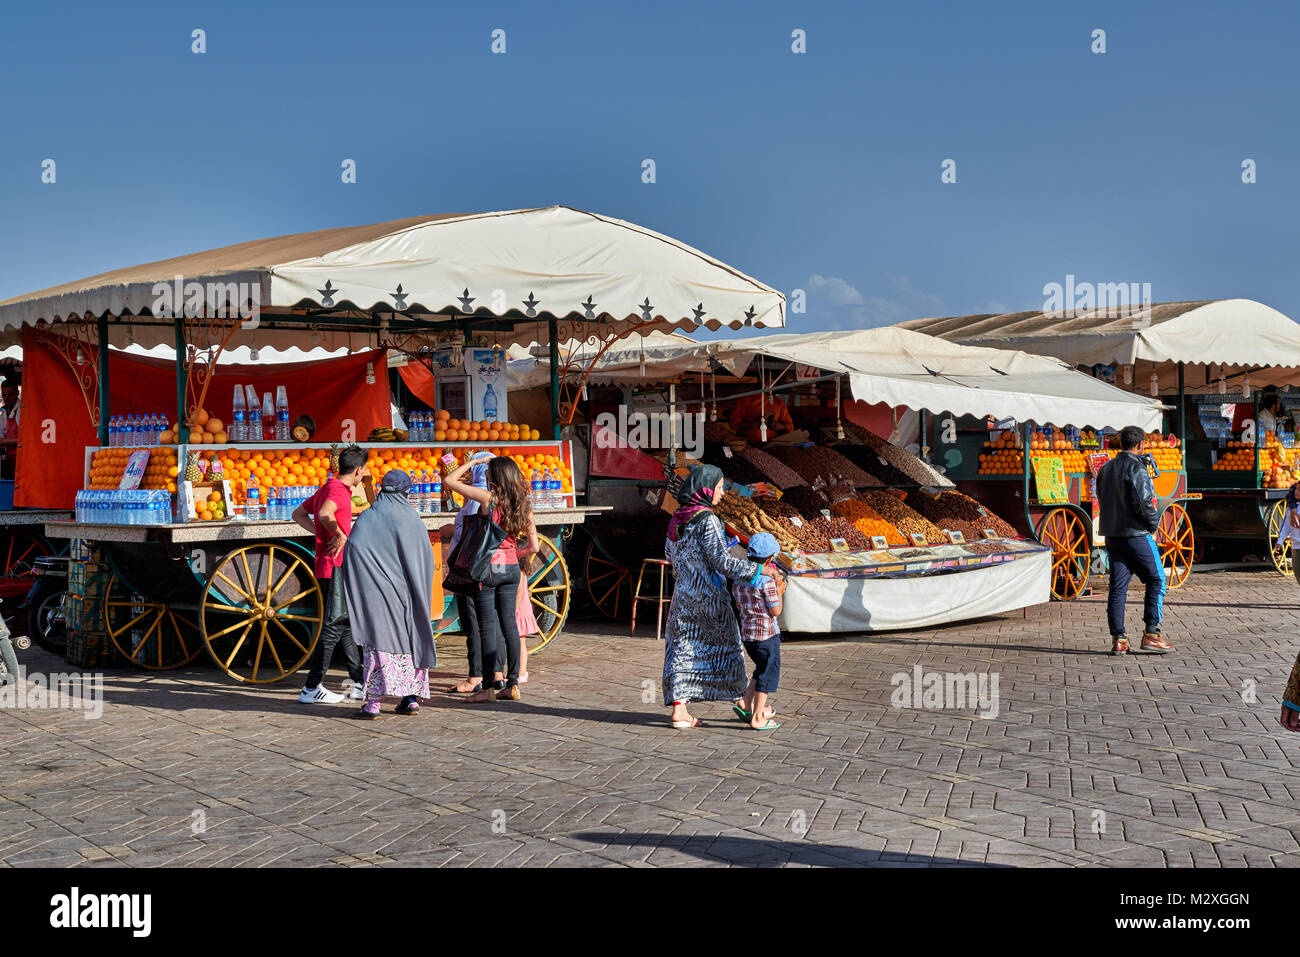 juice stalls on Jemaa el-Fnaa in Marrakesh, Morocco, Africa Stock Photo